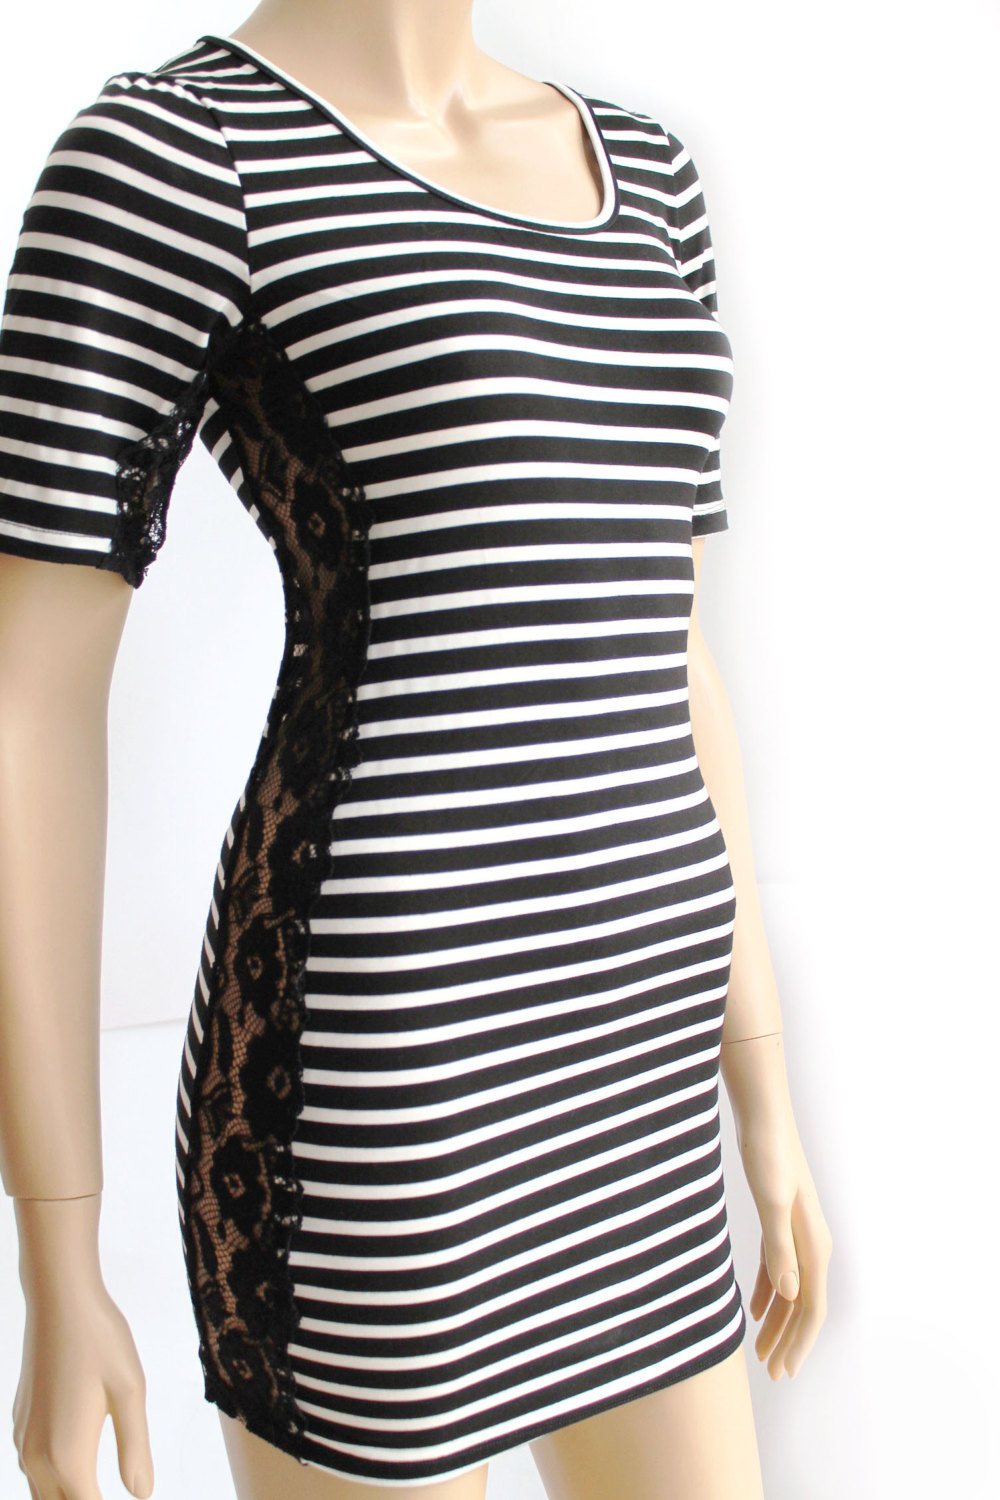 Black and white / cotton/women's Striped casual /mini dress/ tunic